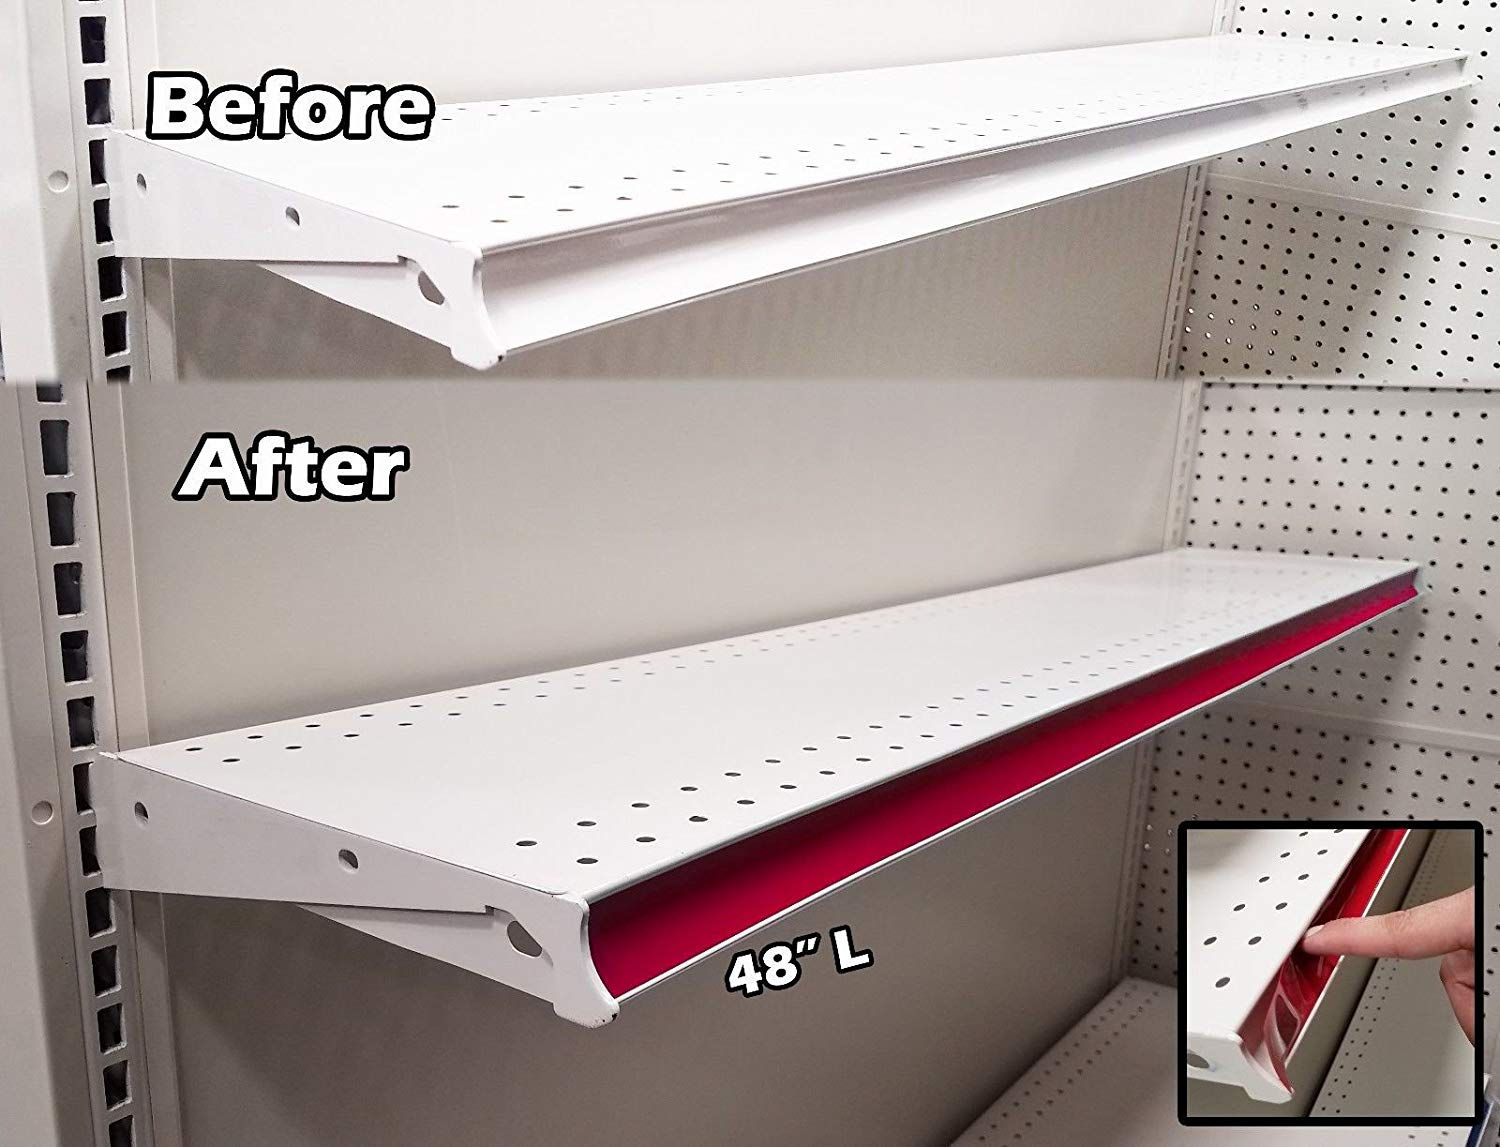 100 Pack Decorative Gondola Shelving Pre Cut Vinyl Insert Strips 48 X 1 25 Shelf C Channel Red